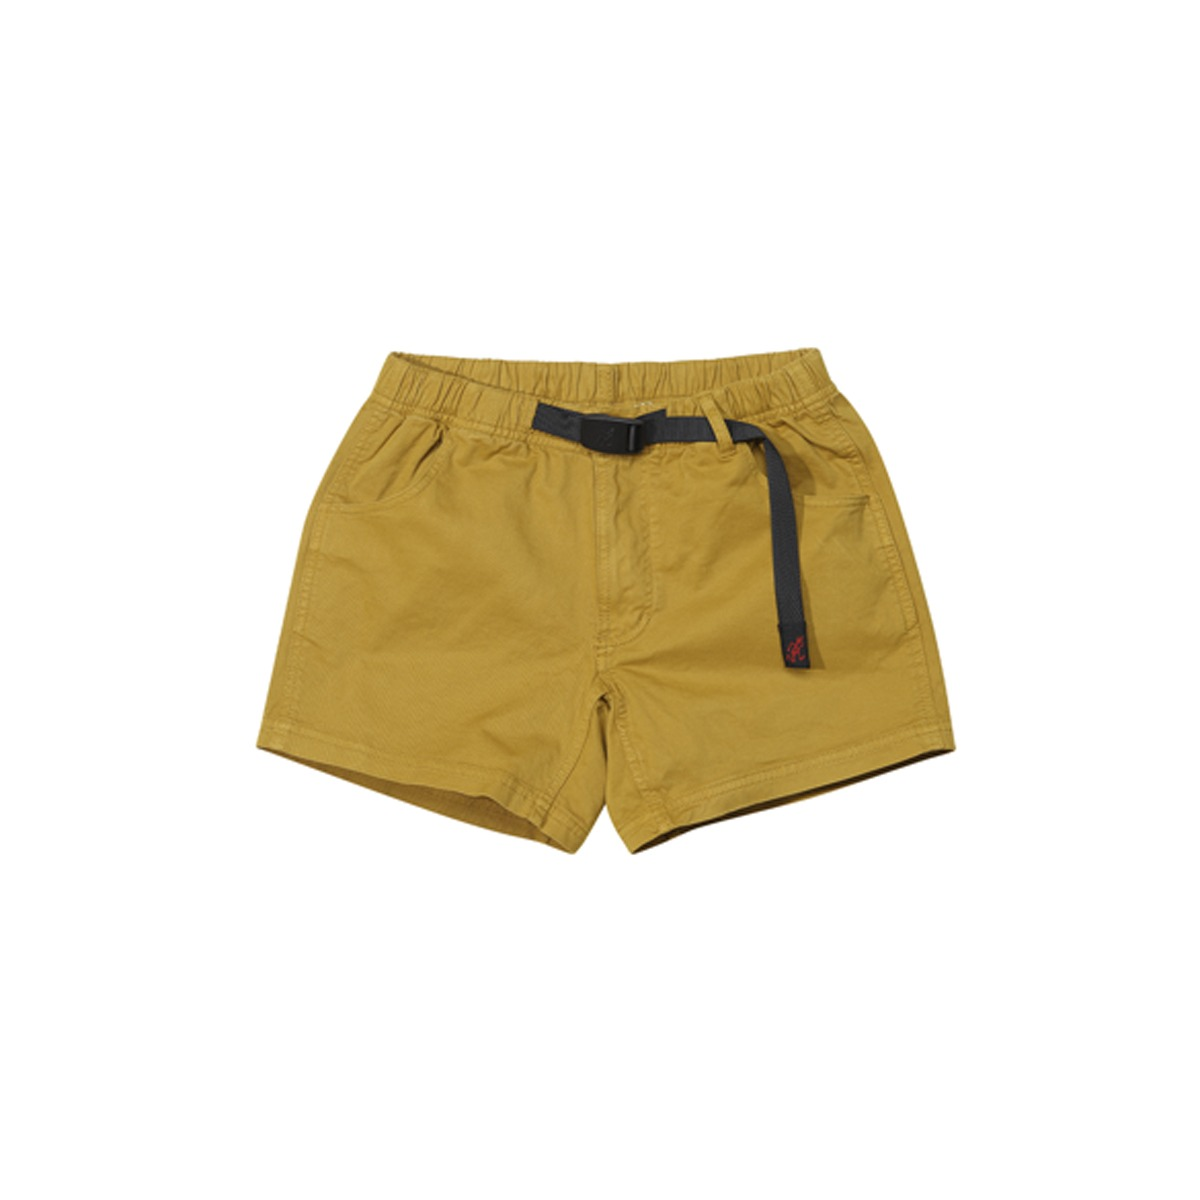 [GRAMICCI] VERY SHORTS (WOMEN) 'DEEP MUSTARD'